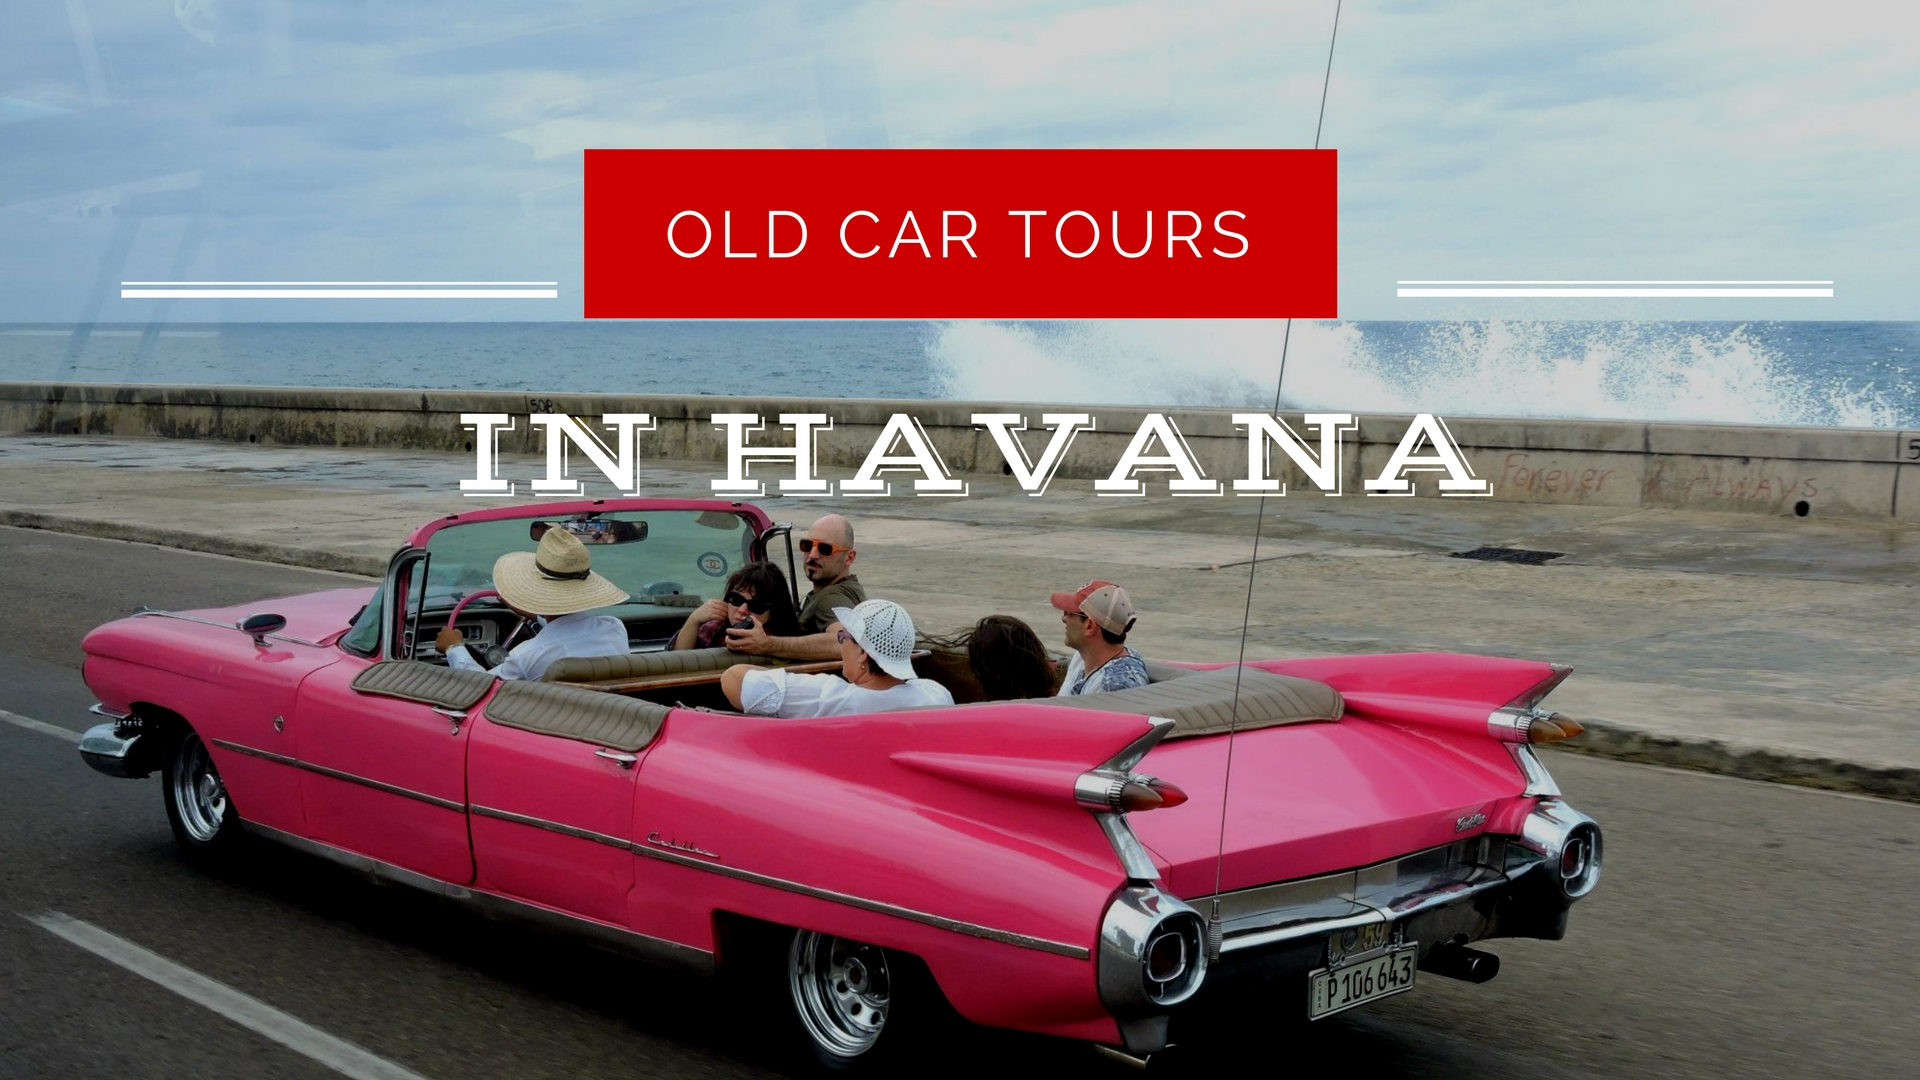 Old Car Tours Havana: What You Need to Know About This Tour